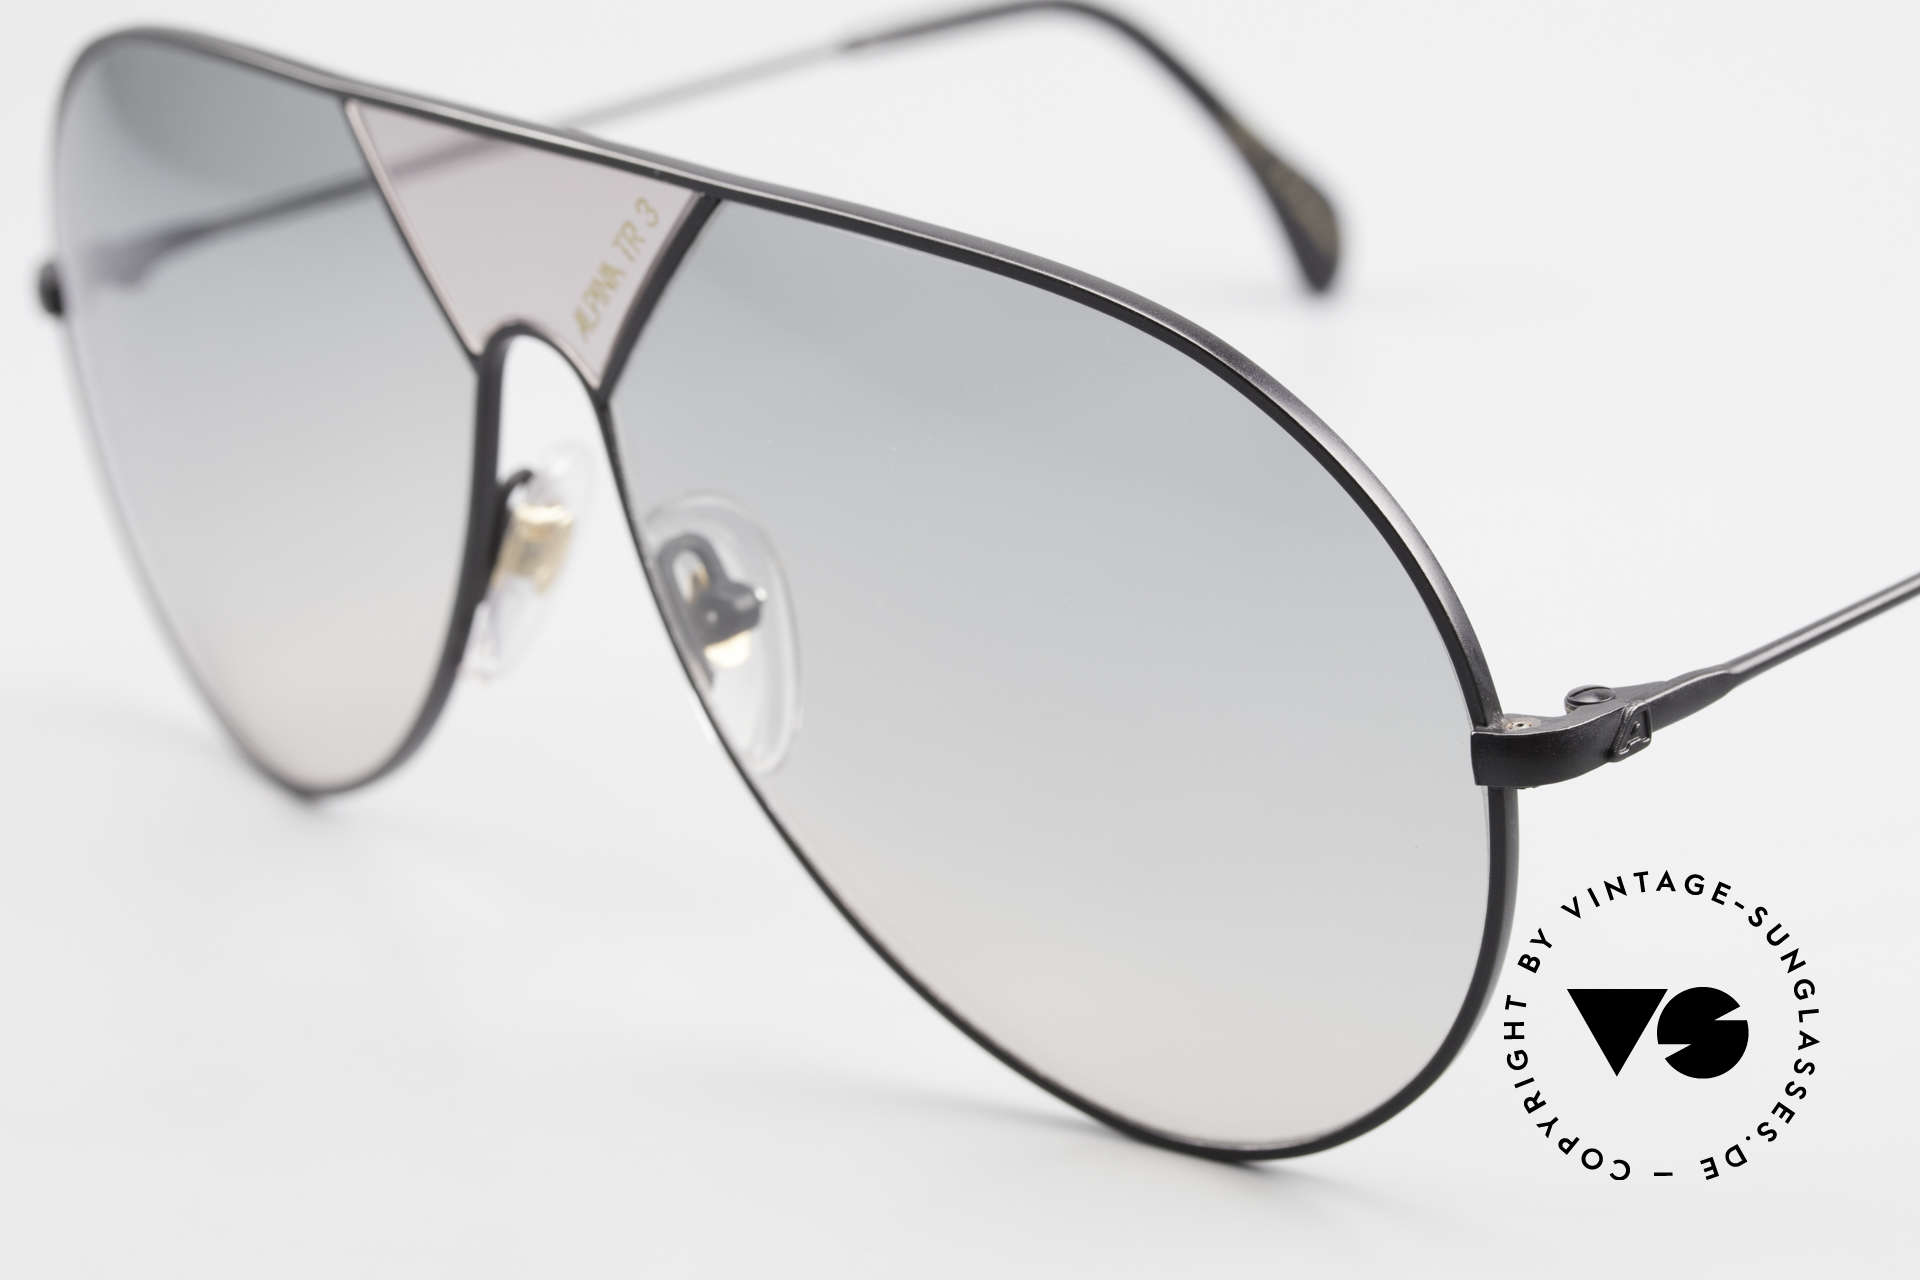 Alpina TR3 80's Sunglasses Limited Edition, Original from 1986 (W. Germany); 100% UV protect., Made for Men